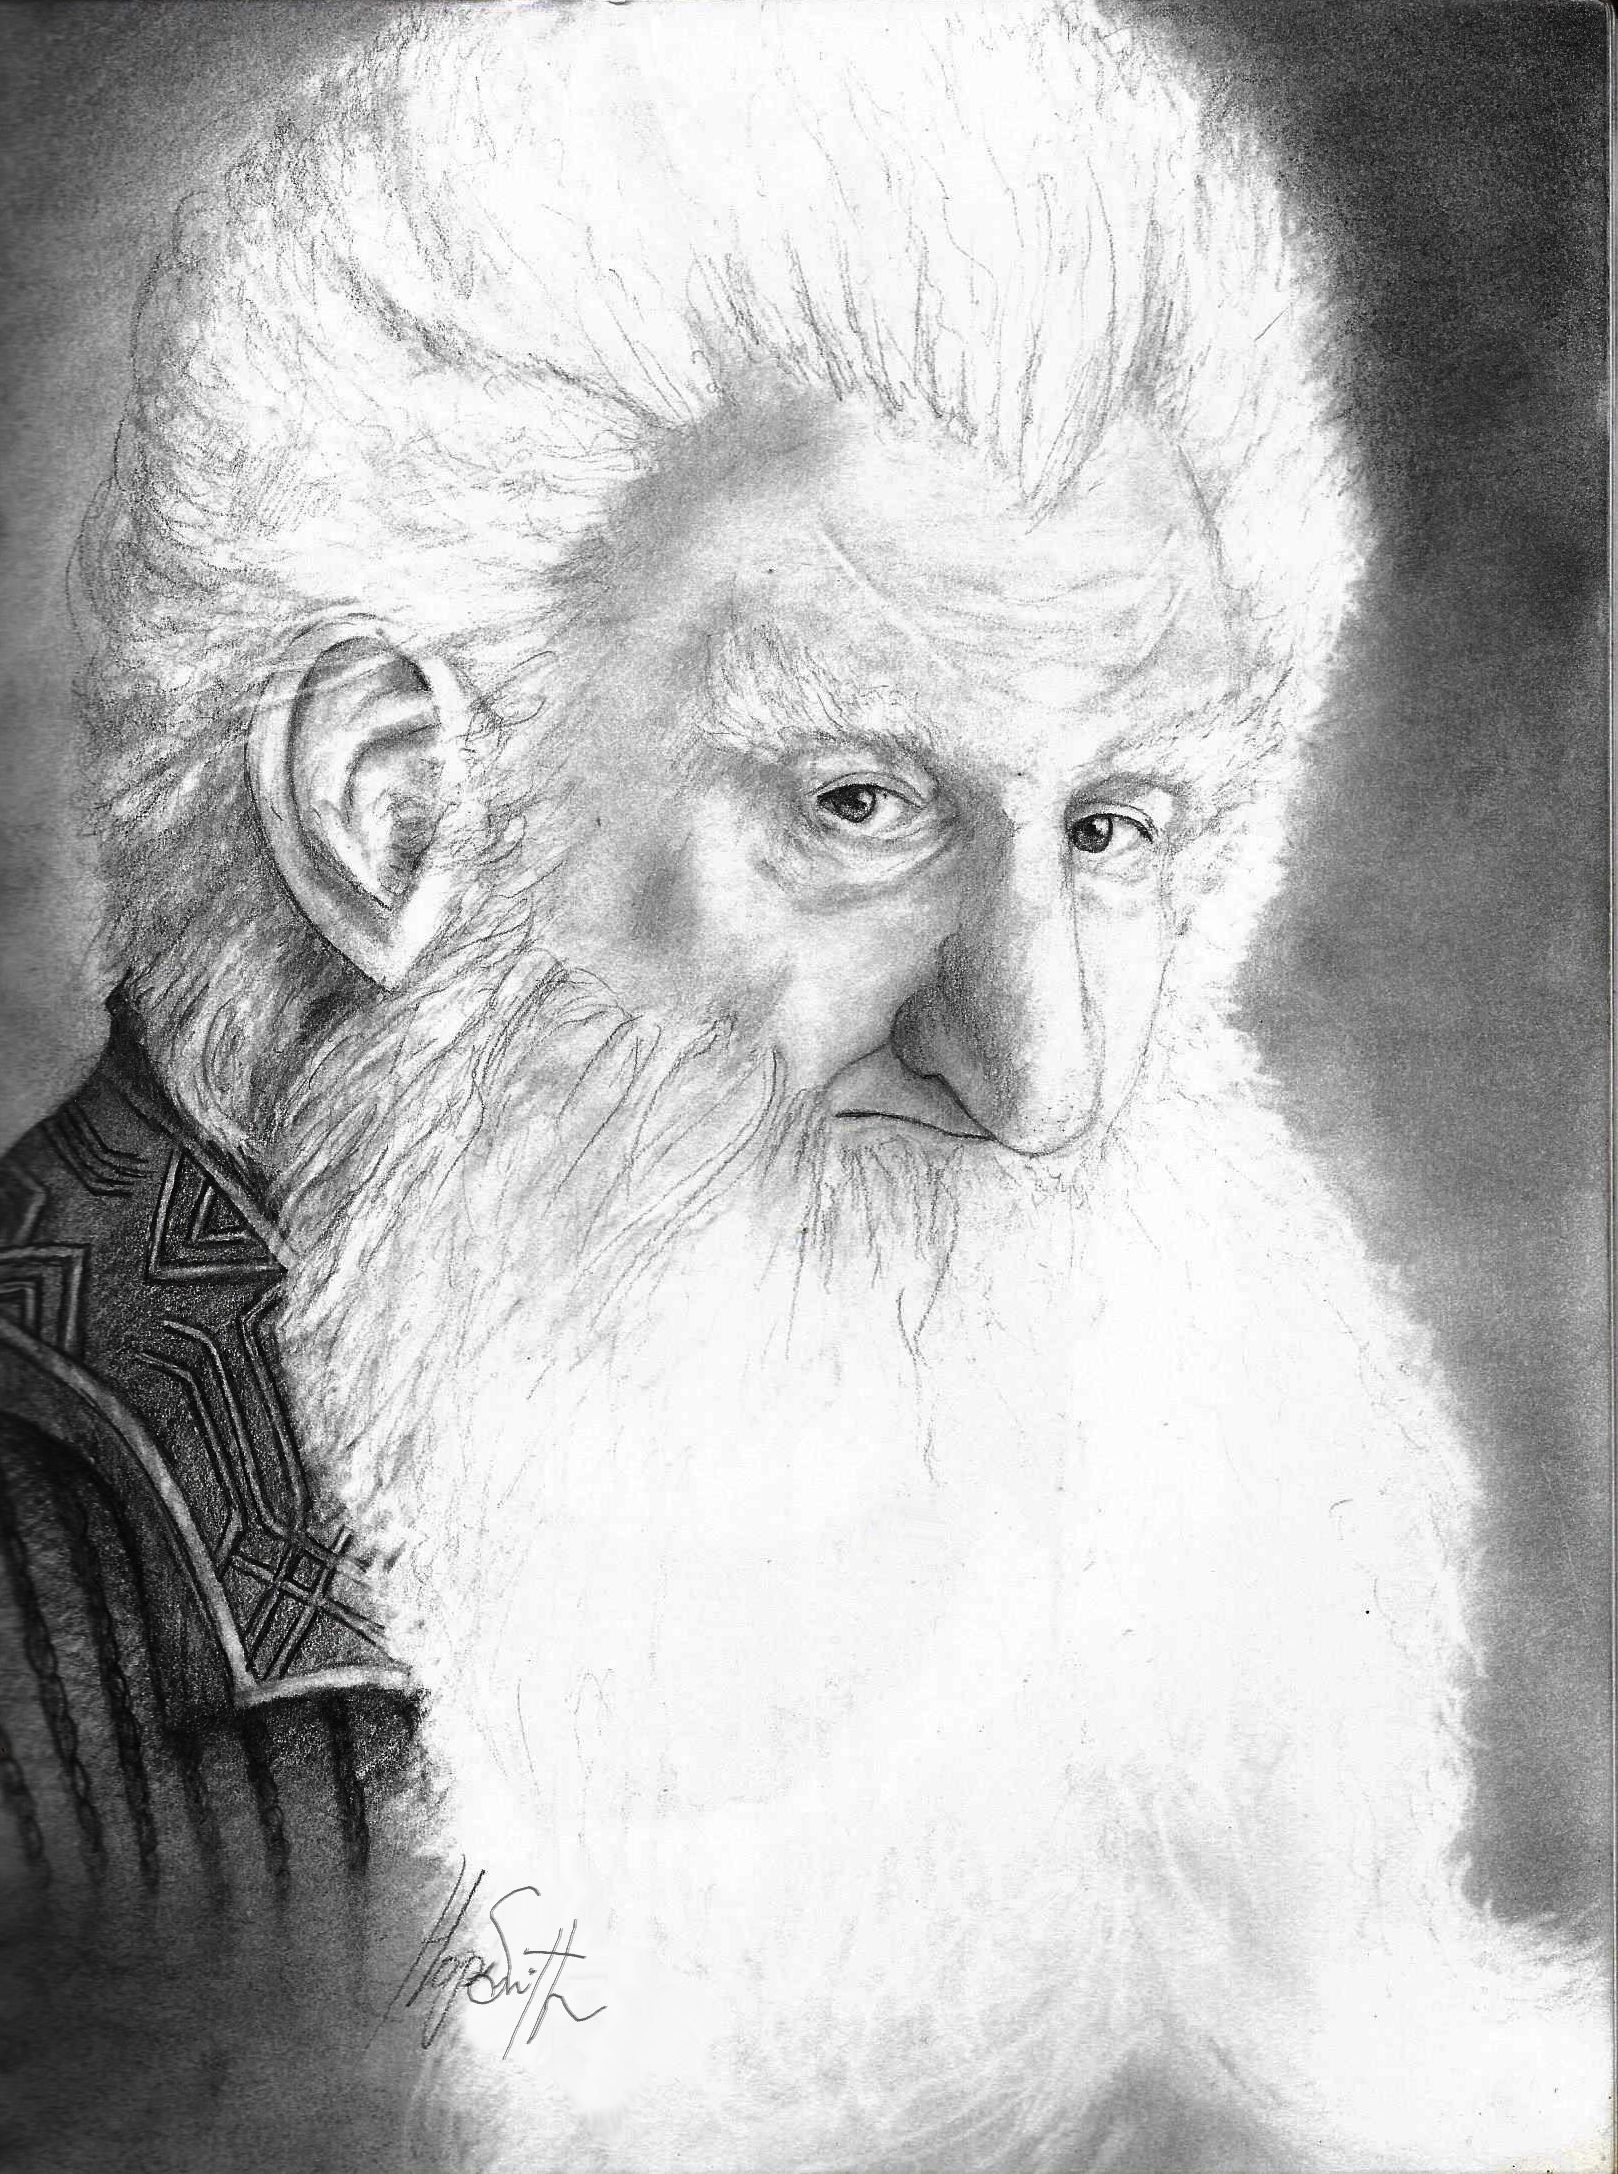 how to draw the hobbit characters ken stott as balin from the hobbit trilogy pencil on draw the characters to hobbit how